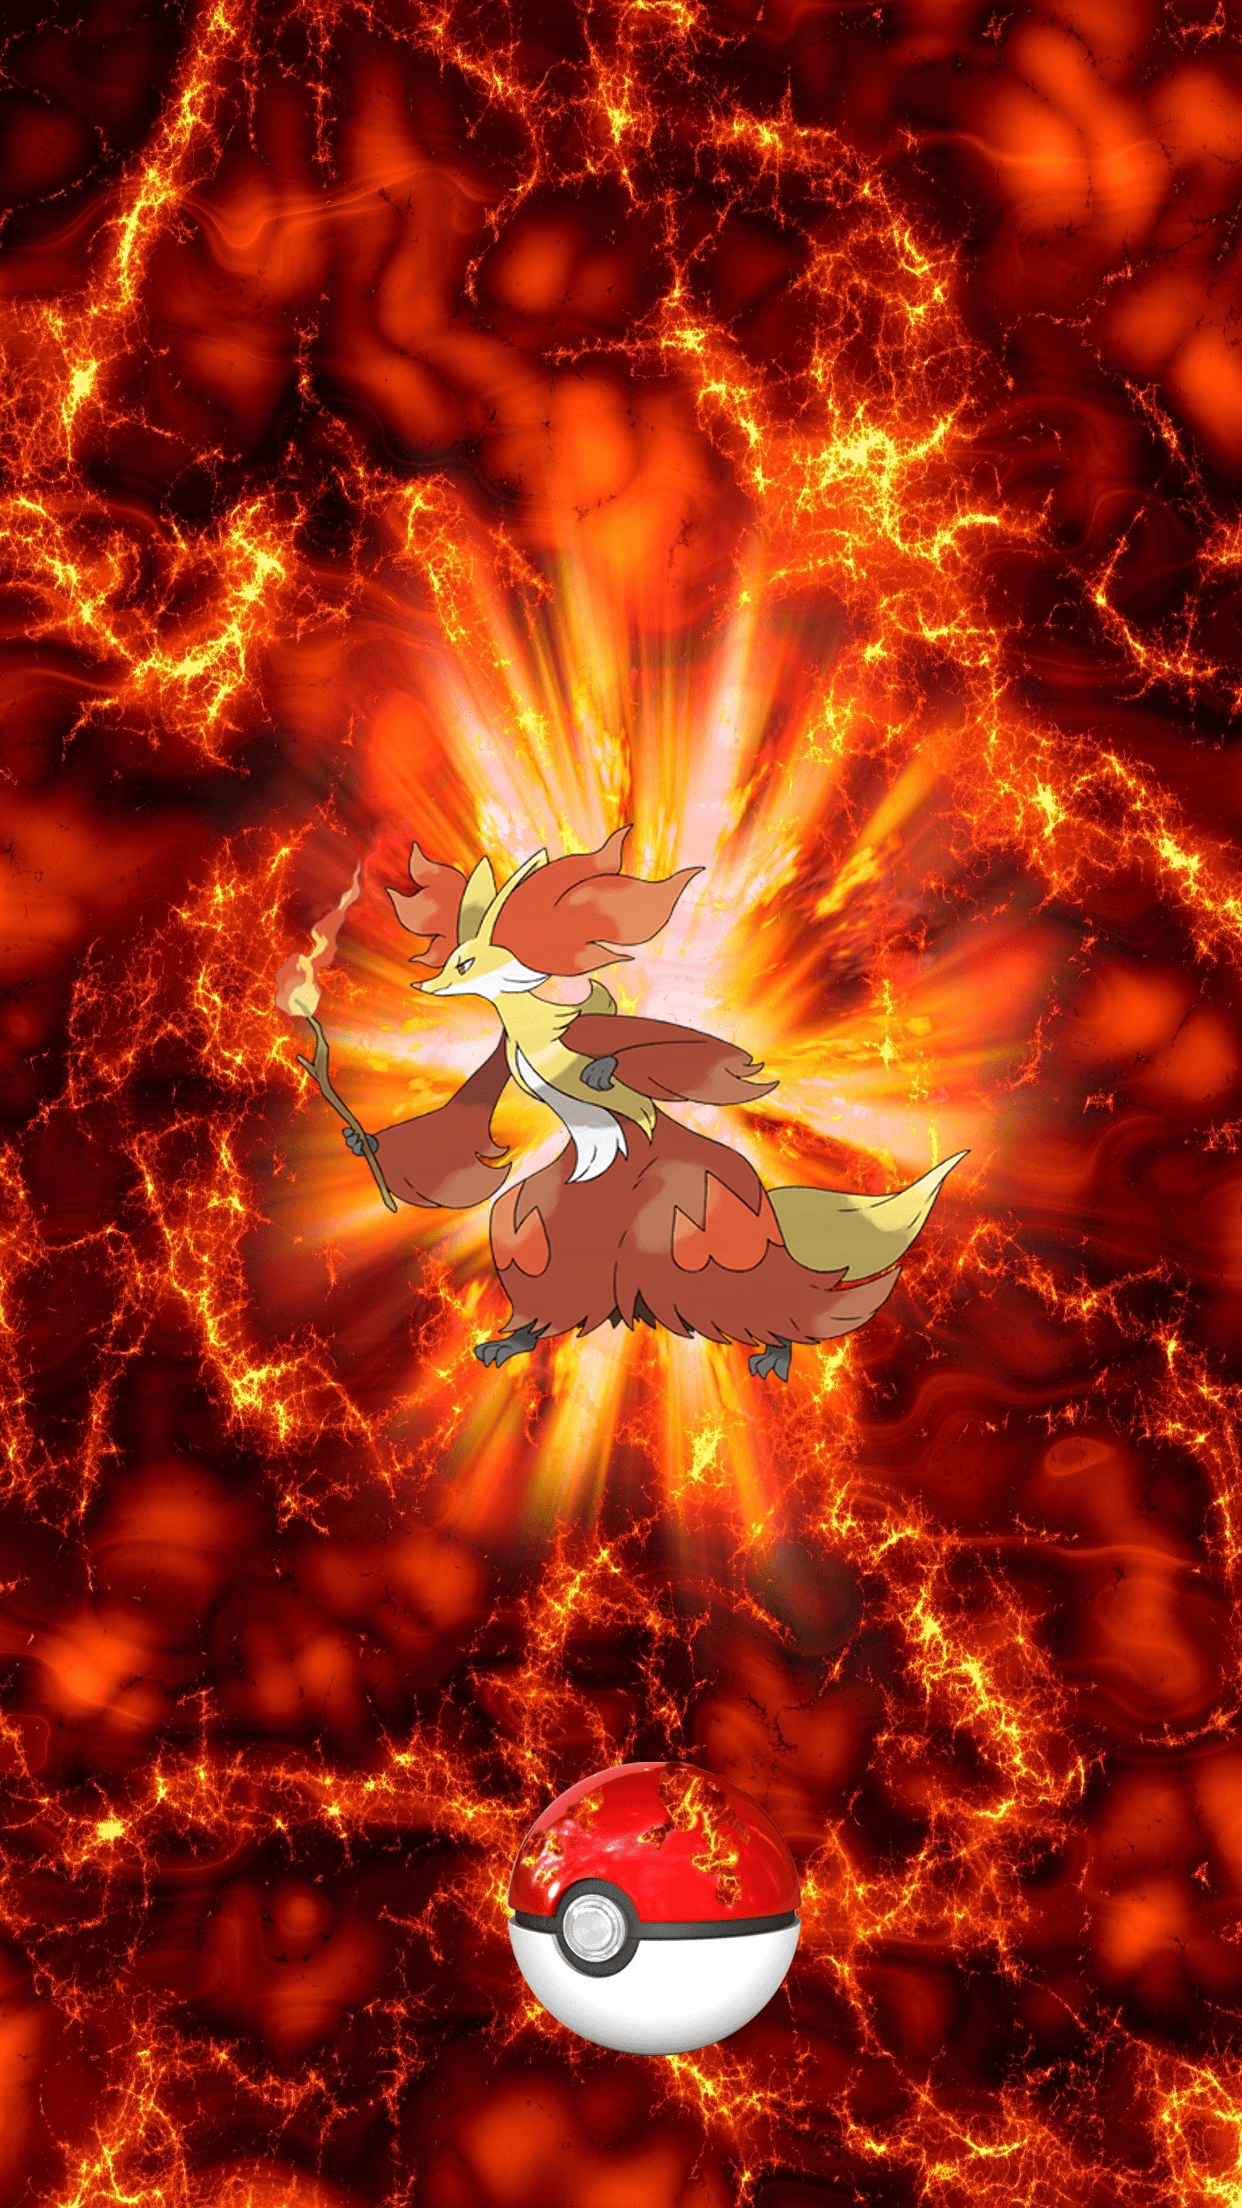 655 Fire Pokeball Delphox Mahoxy 137 140 Braixen | Wallpaper